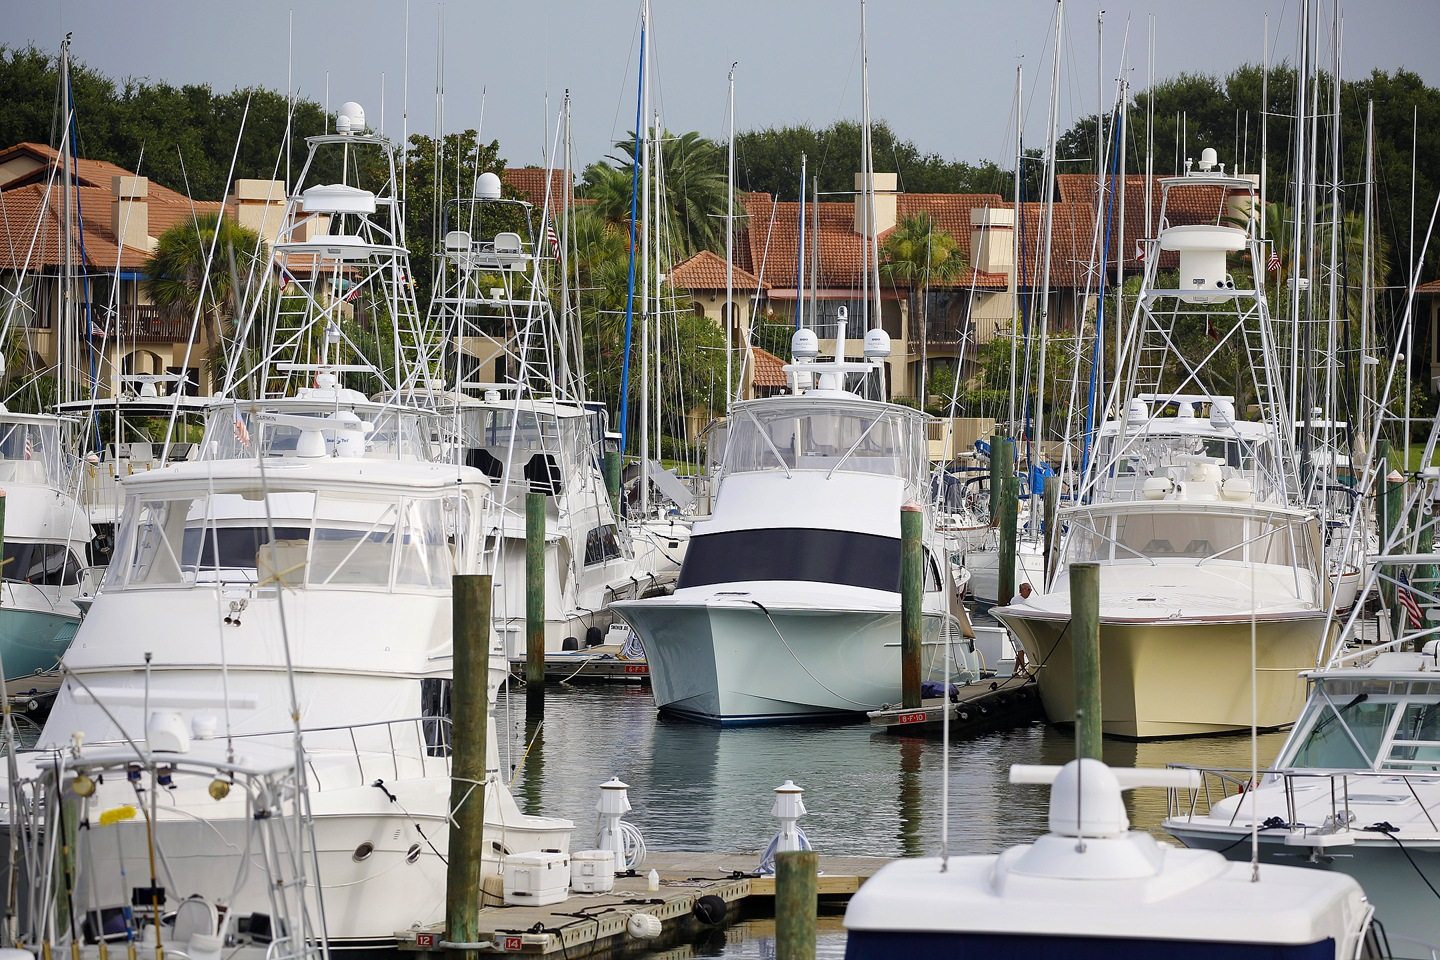 Towers of F Dock by ChuckL